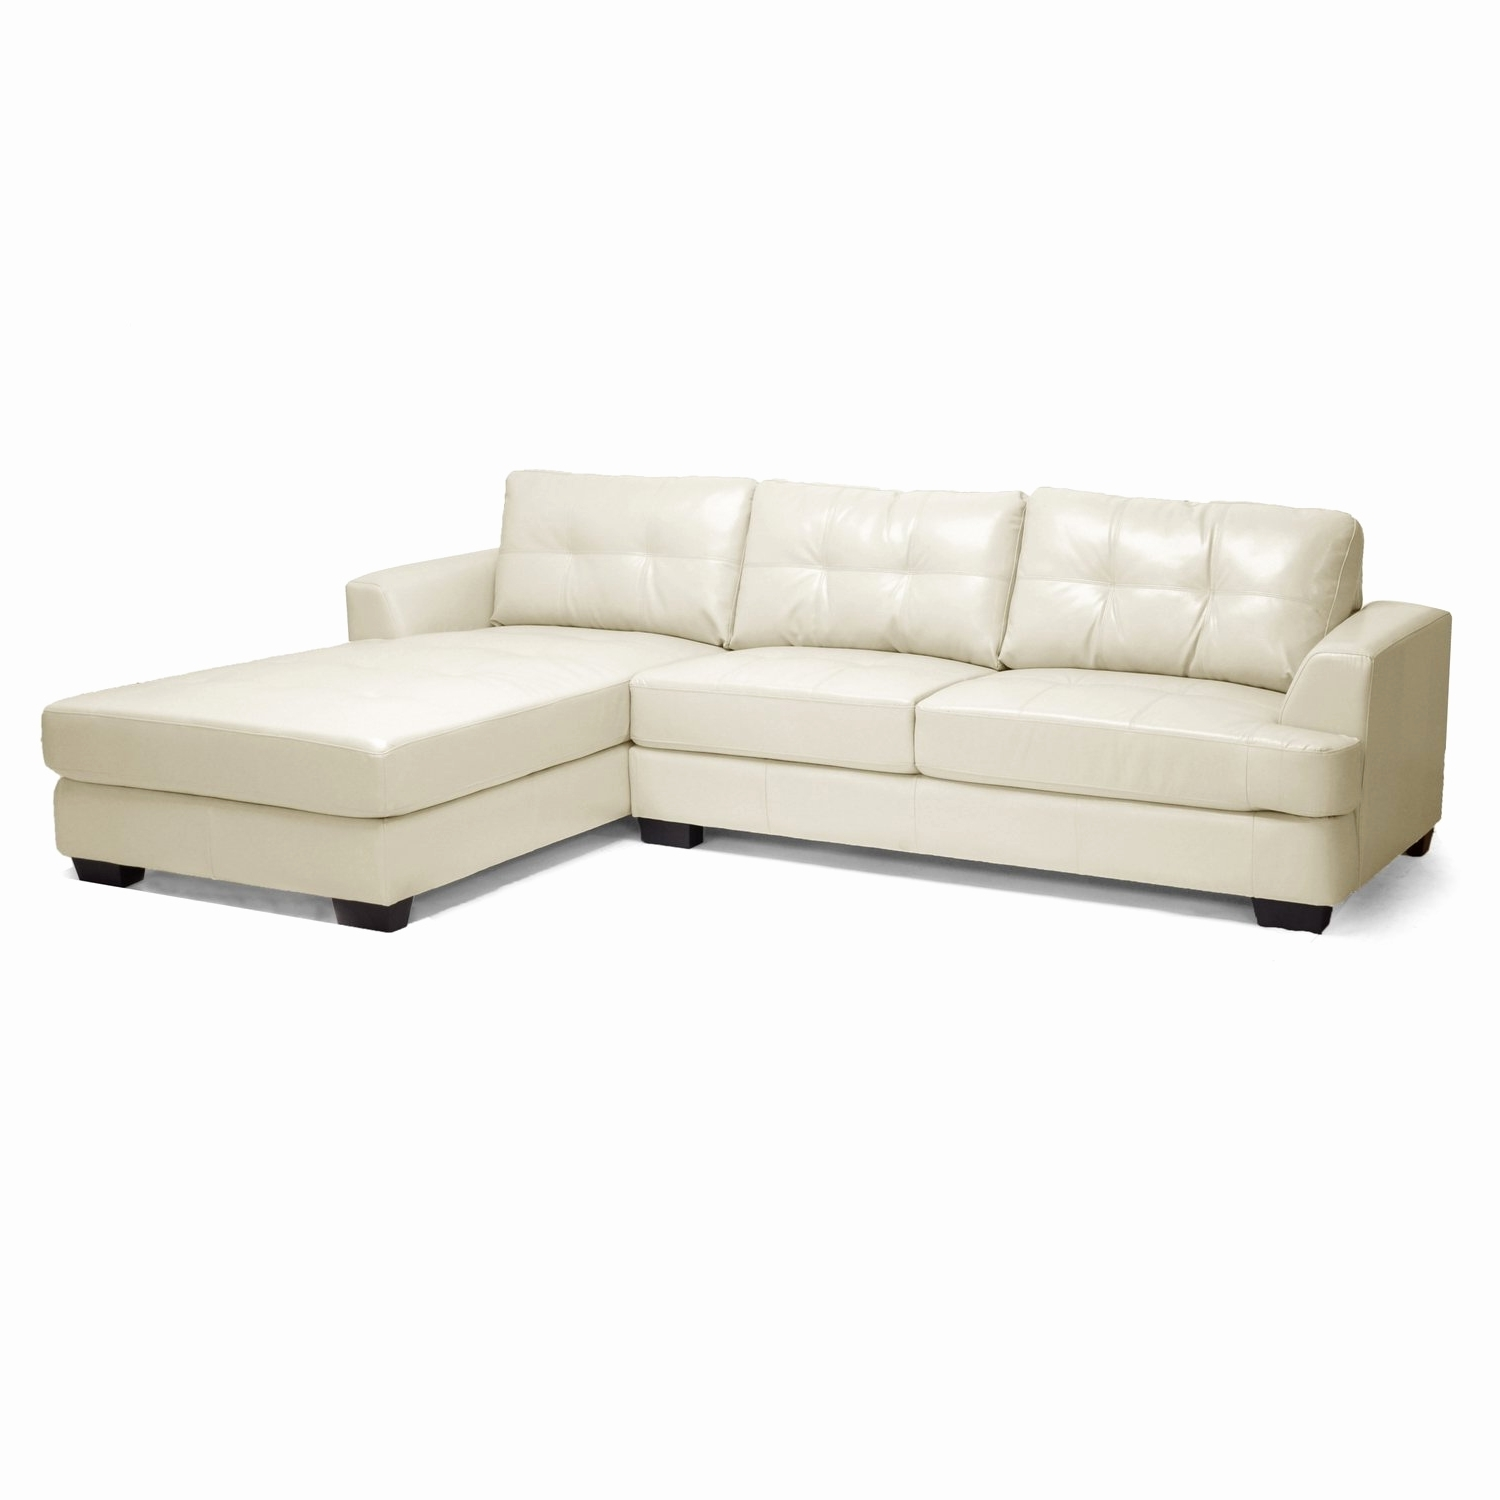 New Orleans Sectional Sofas For 2019 Leather Sectional Sofa New Orleans Archives – Seatersofa (View 8 of 20)